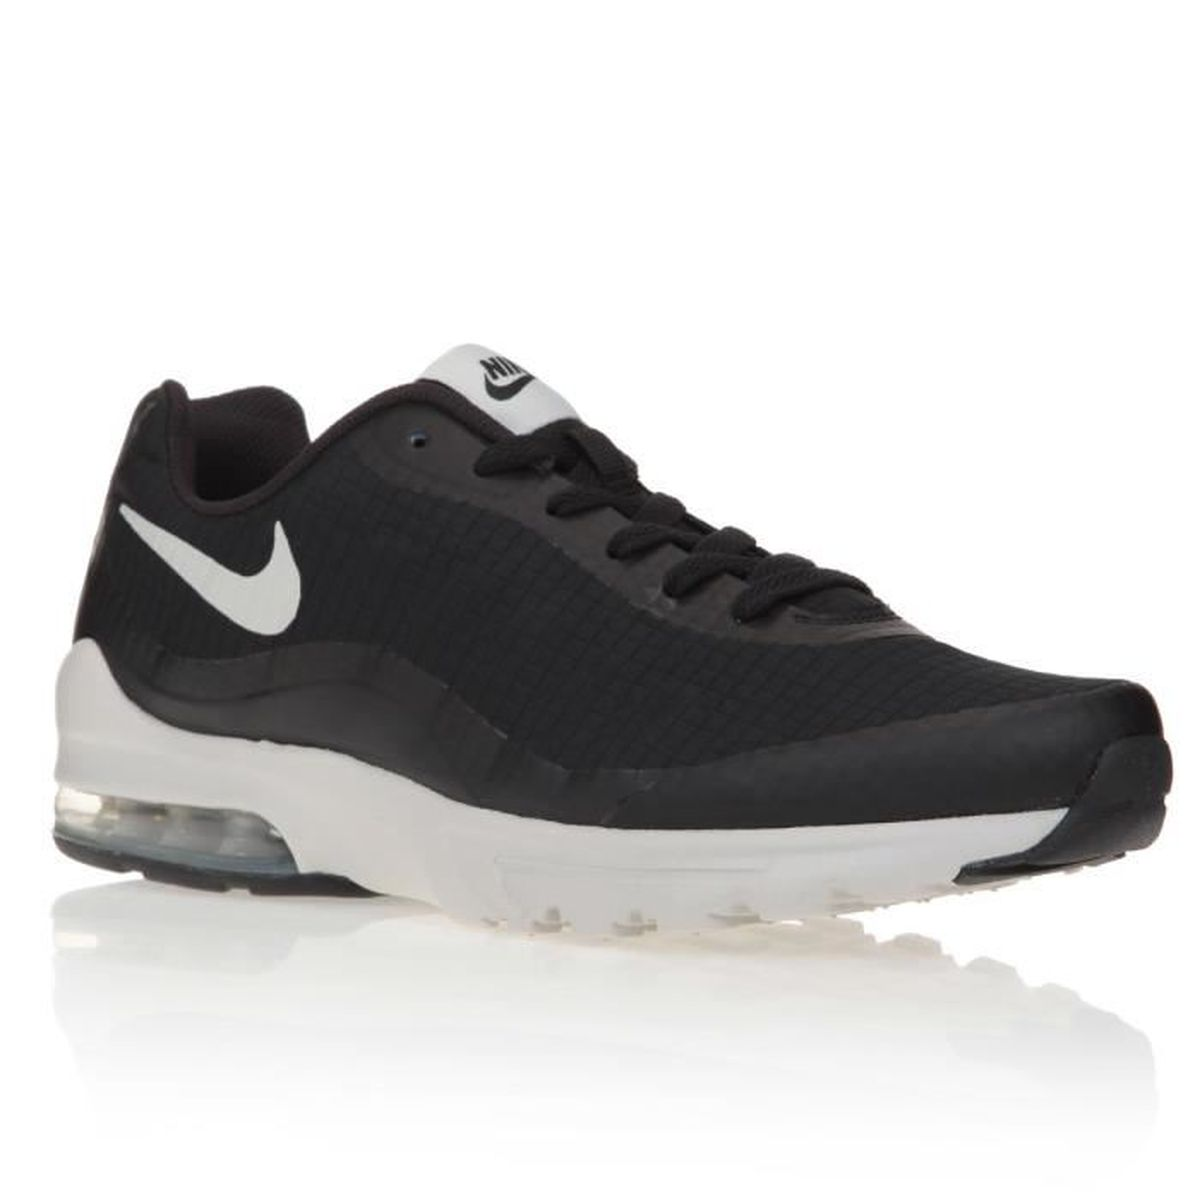 Nike 6 0 baskets Mid 0 6 Chaussure Mogan Homme 8Nny0Owvm